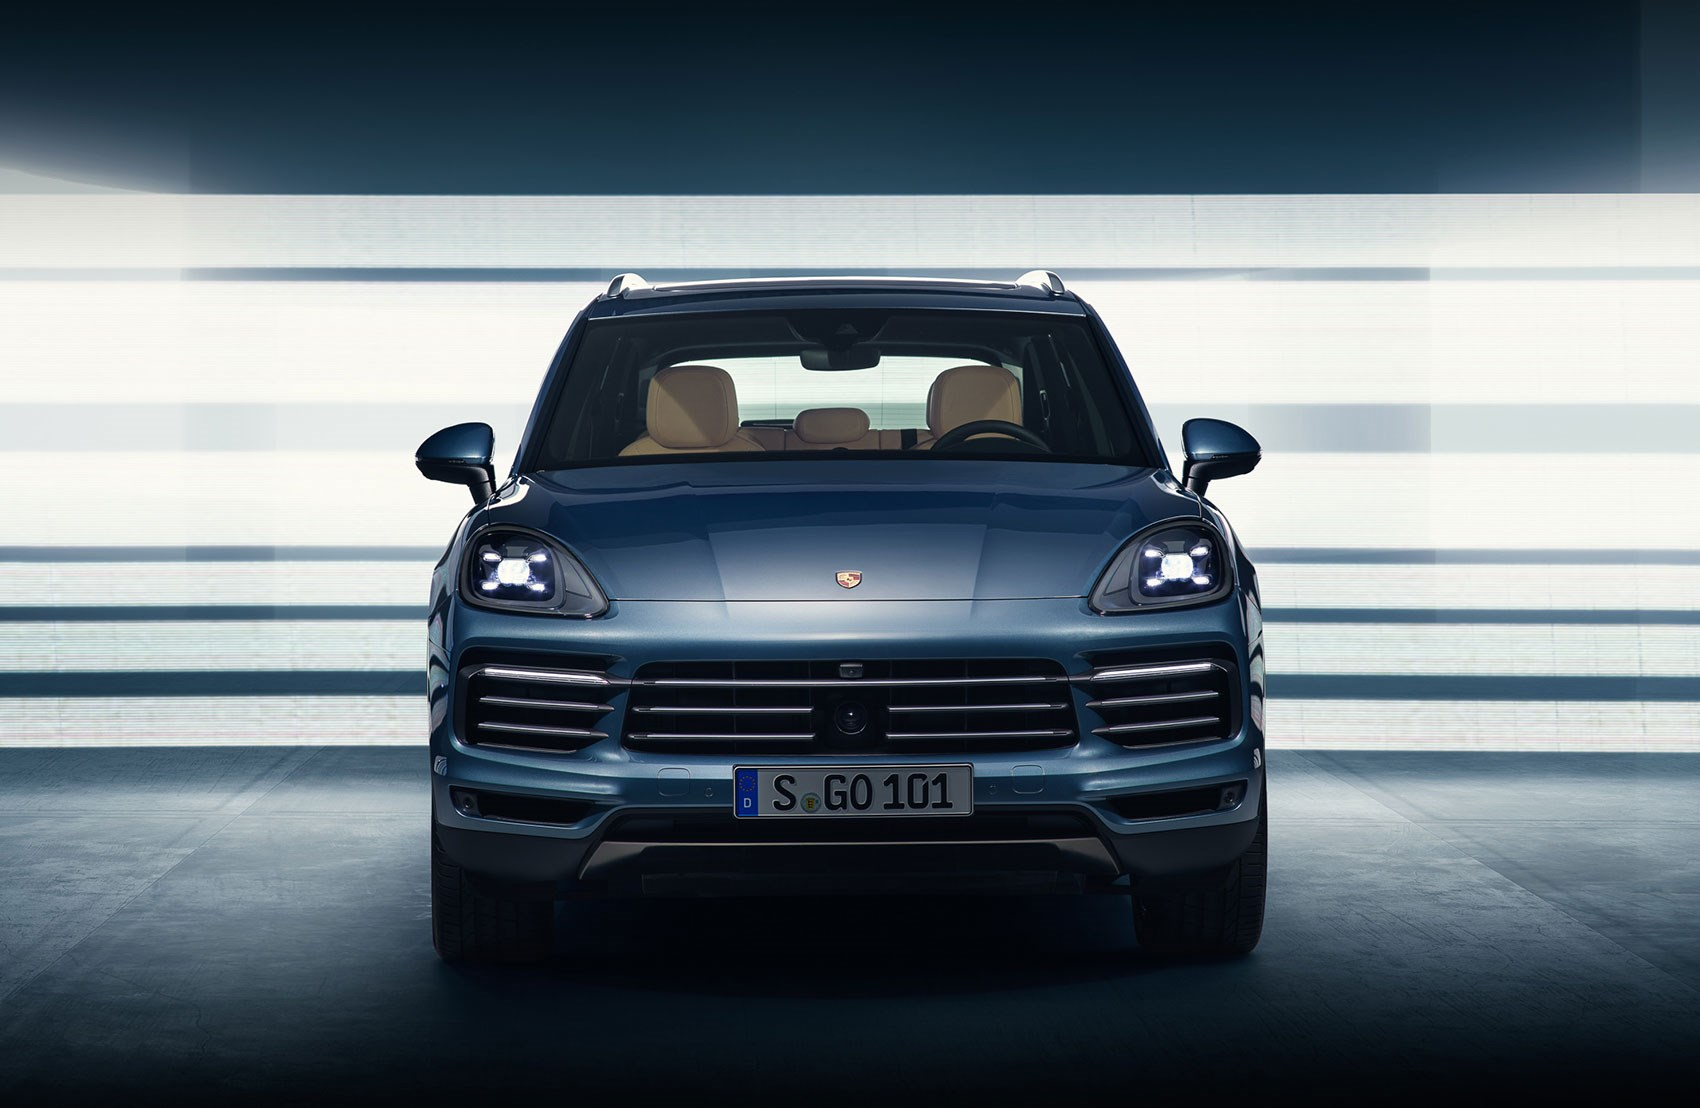 2018 One Front End Of New Porsche Cayenne Spoiled By Unsightly Radar Snout